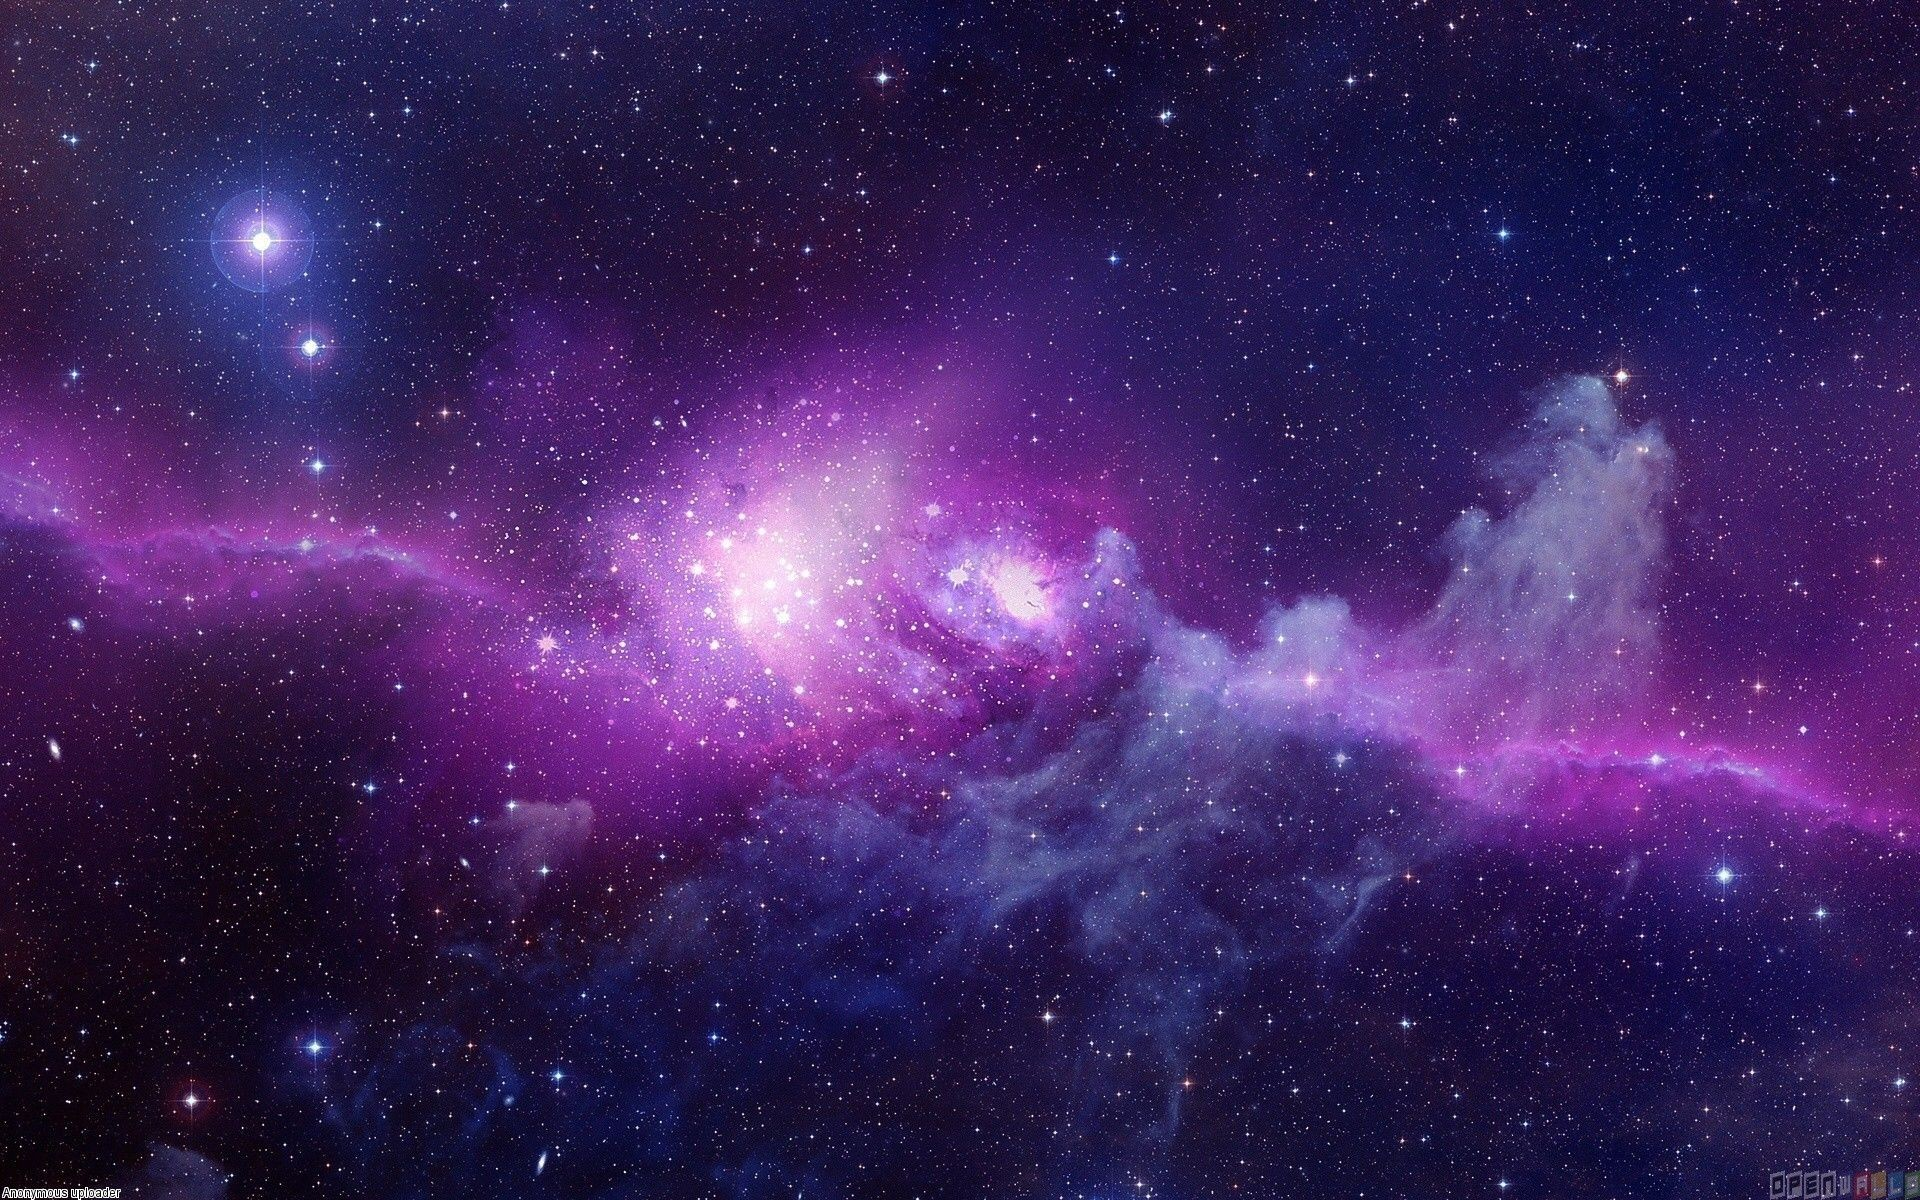 Space background tumblr download free beautiful hd wallpapers space wallpaper tumblr voltagebd Choice Image